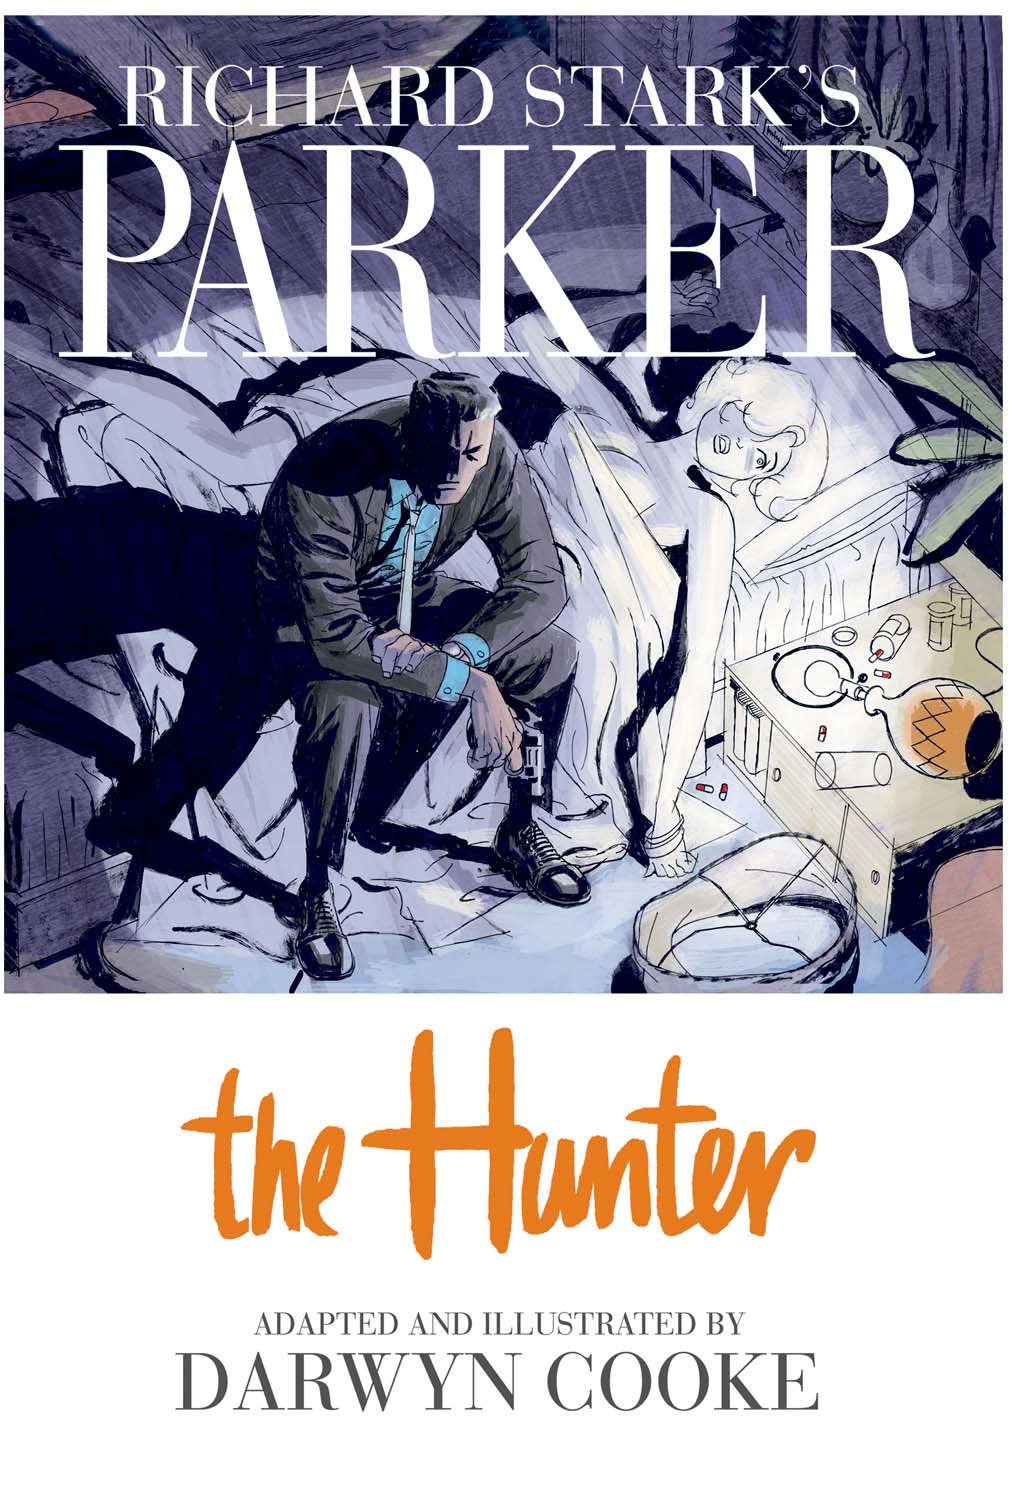 [Darwyn Cooke's The Hunter cover]